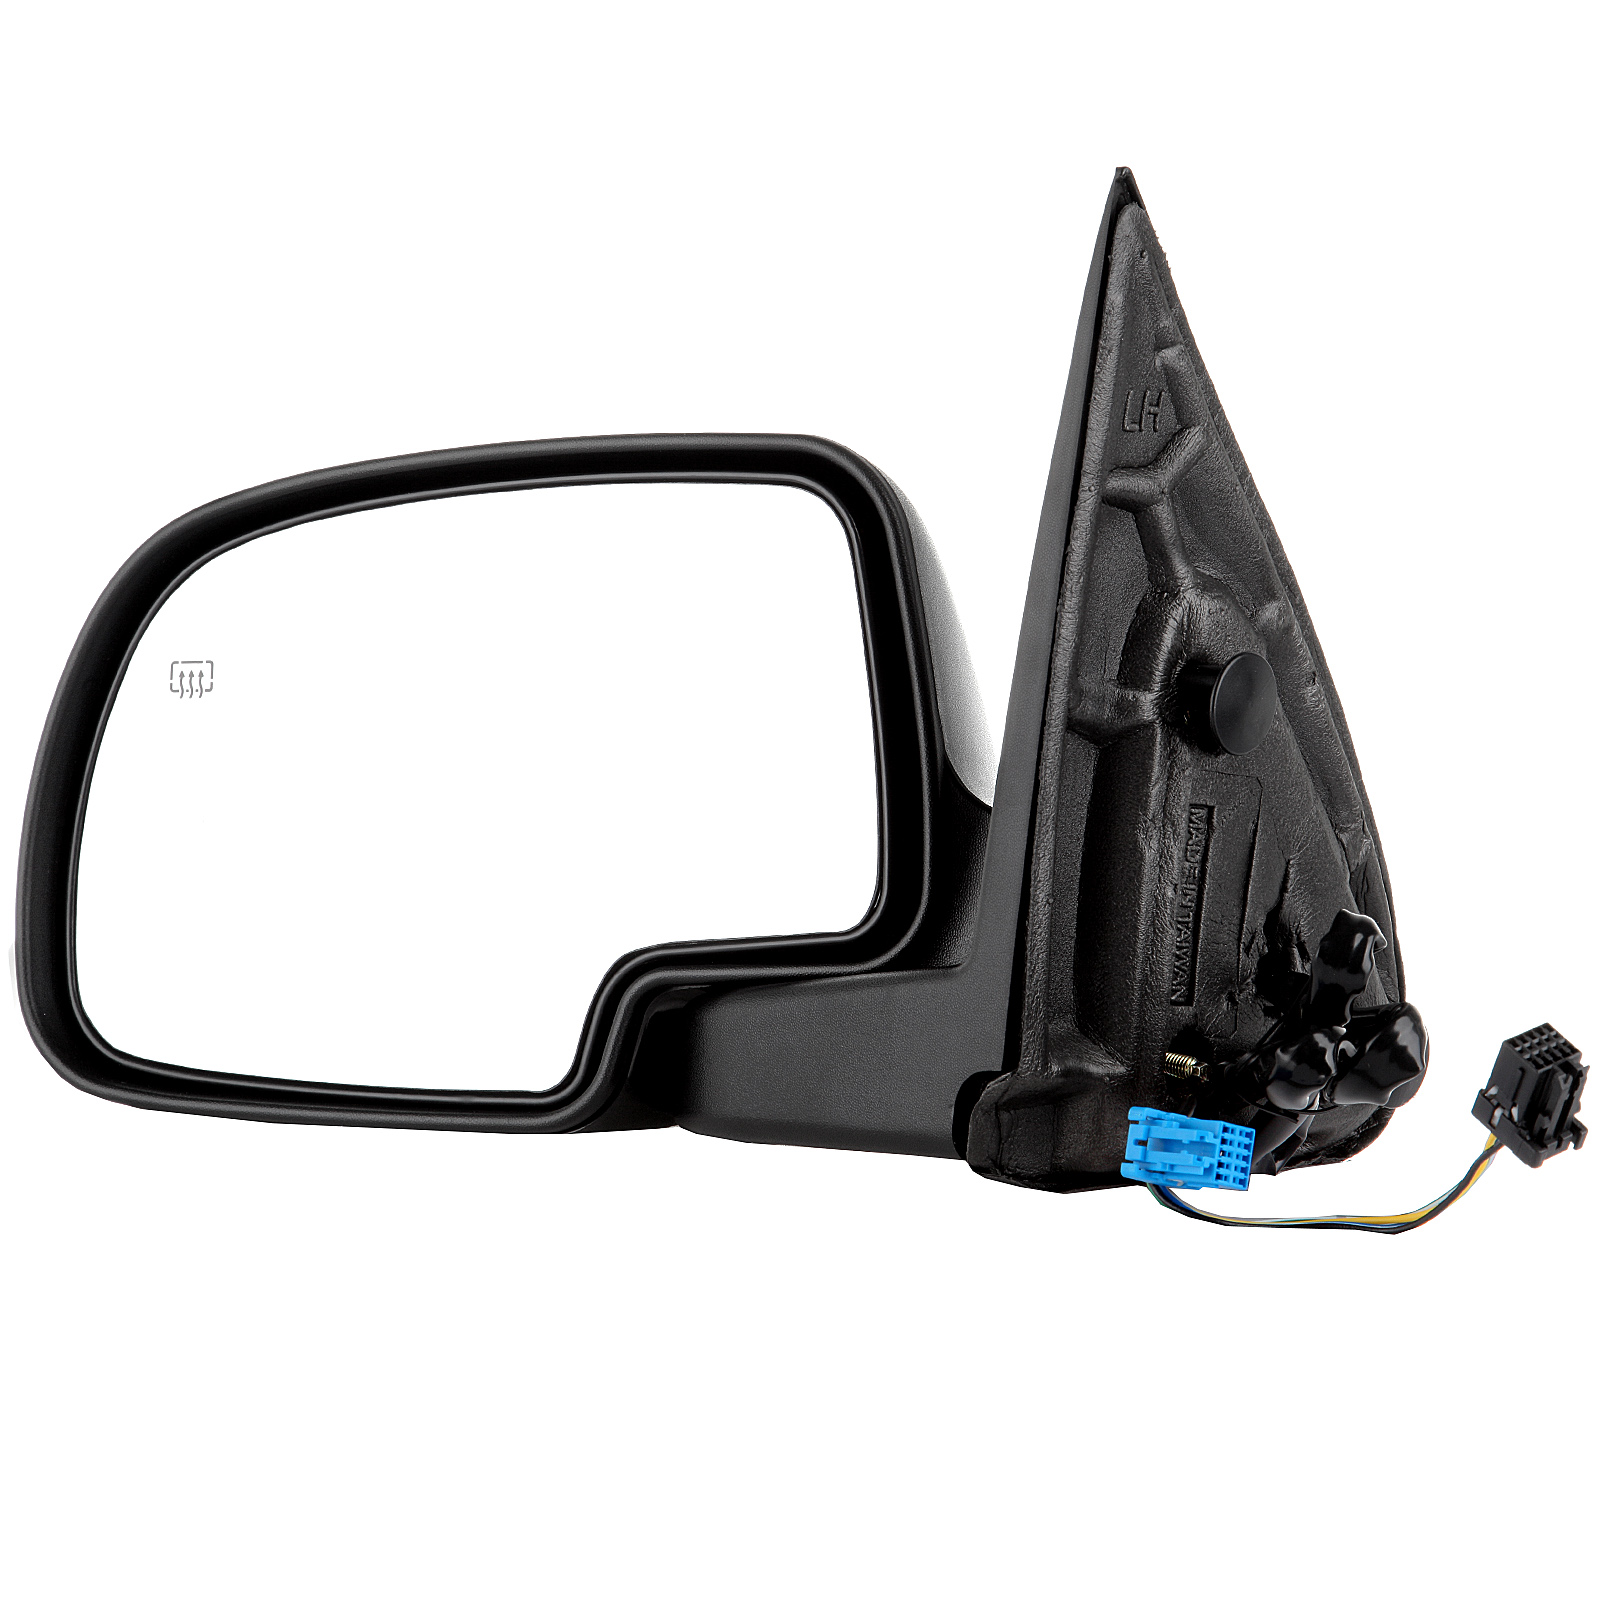 Eccpp power car rearview mirror heated side view mirror heating driver left lh for 2003 2004